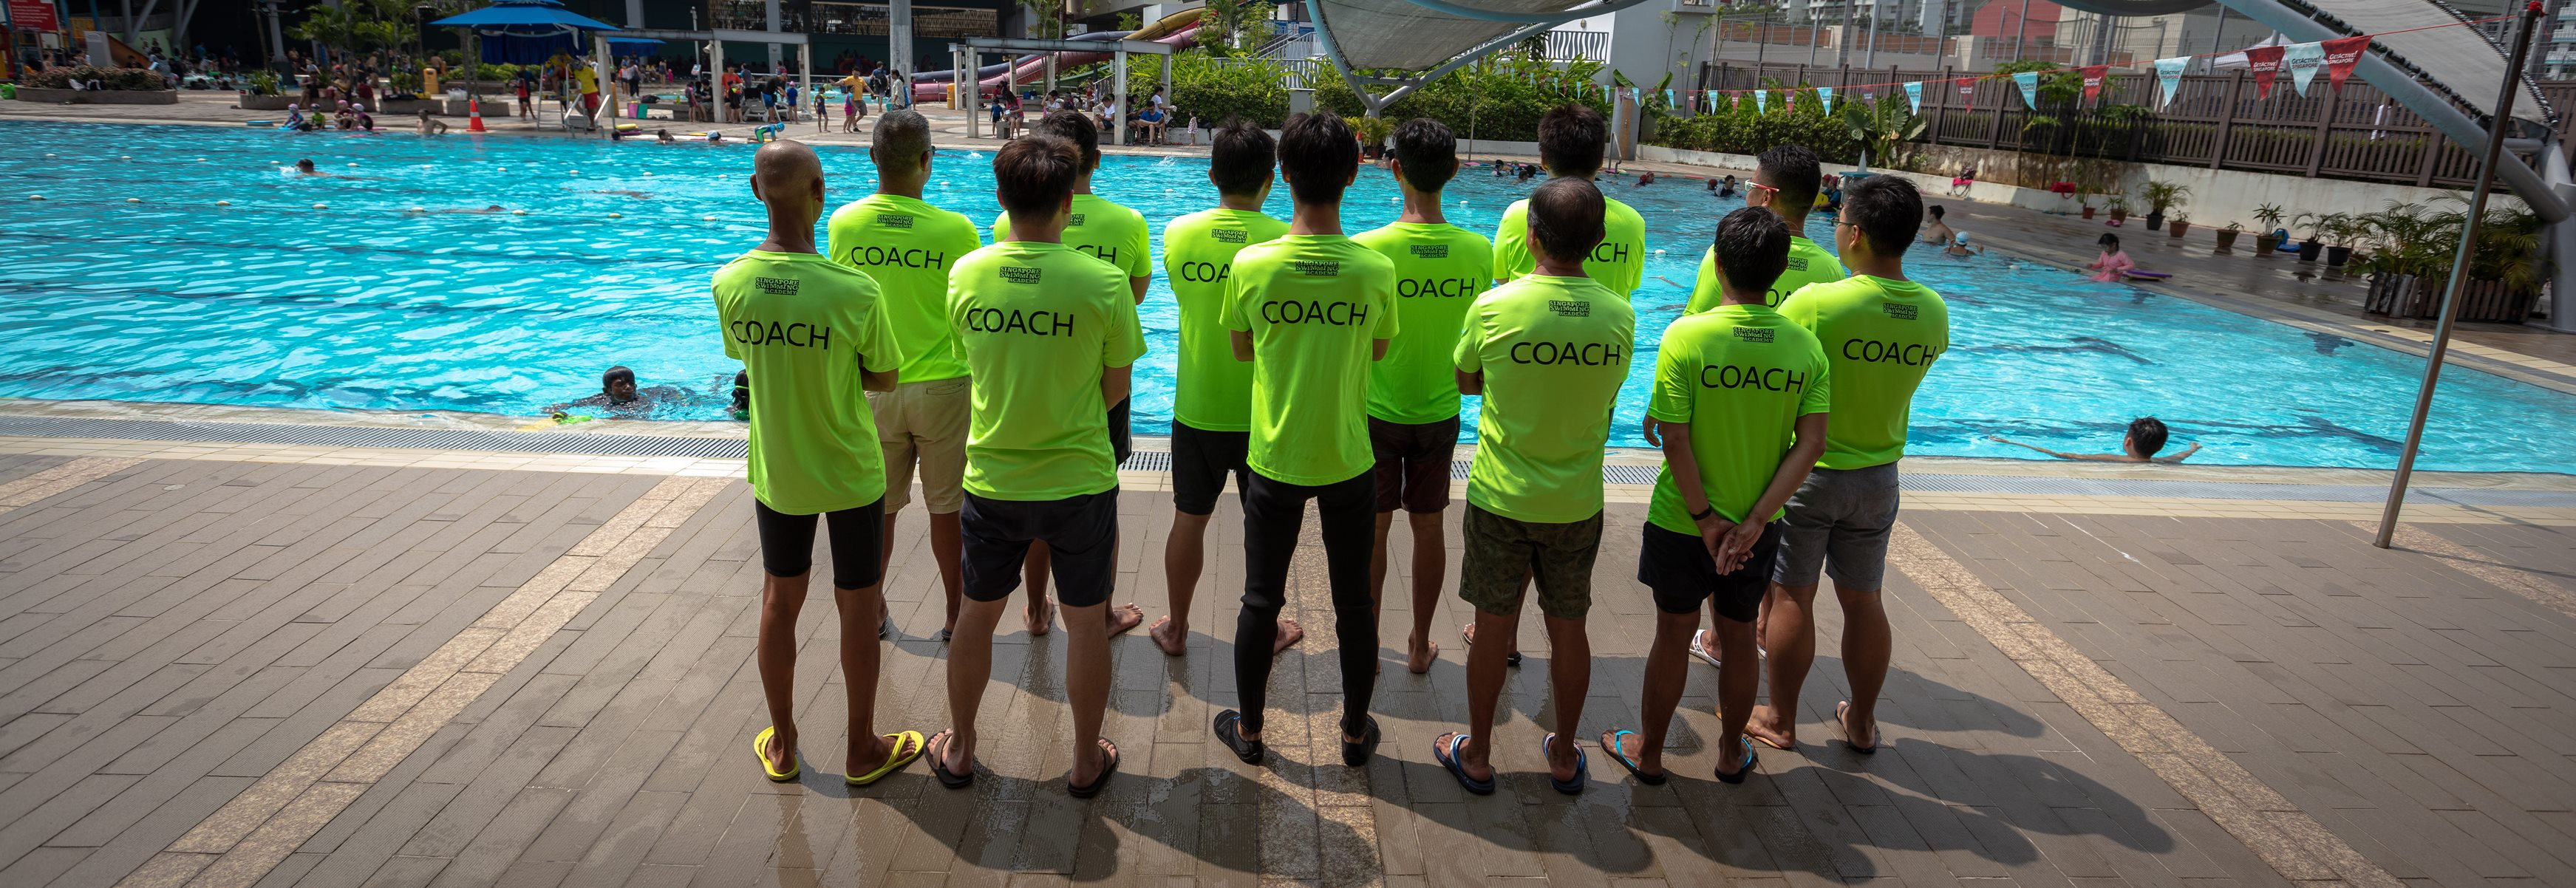 Swimming Coaches